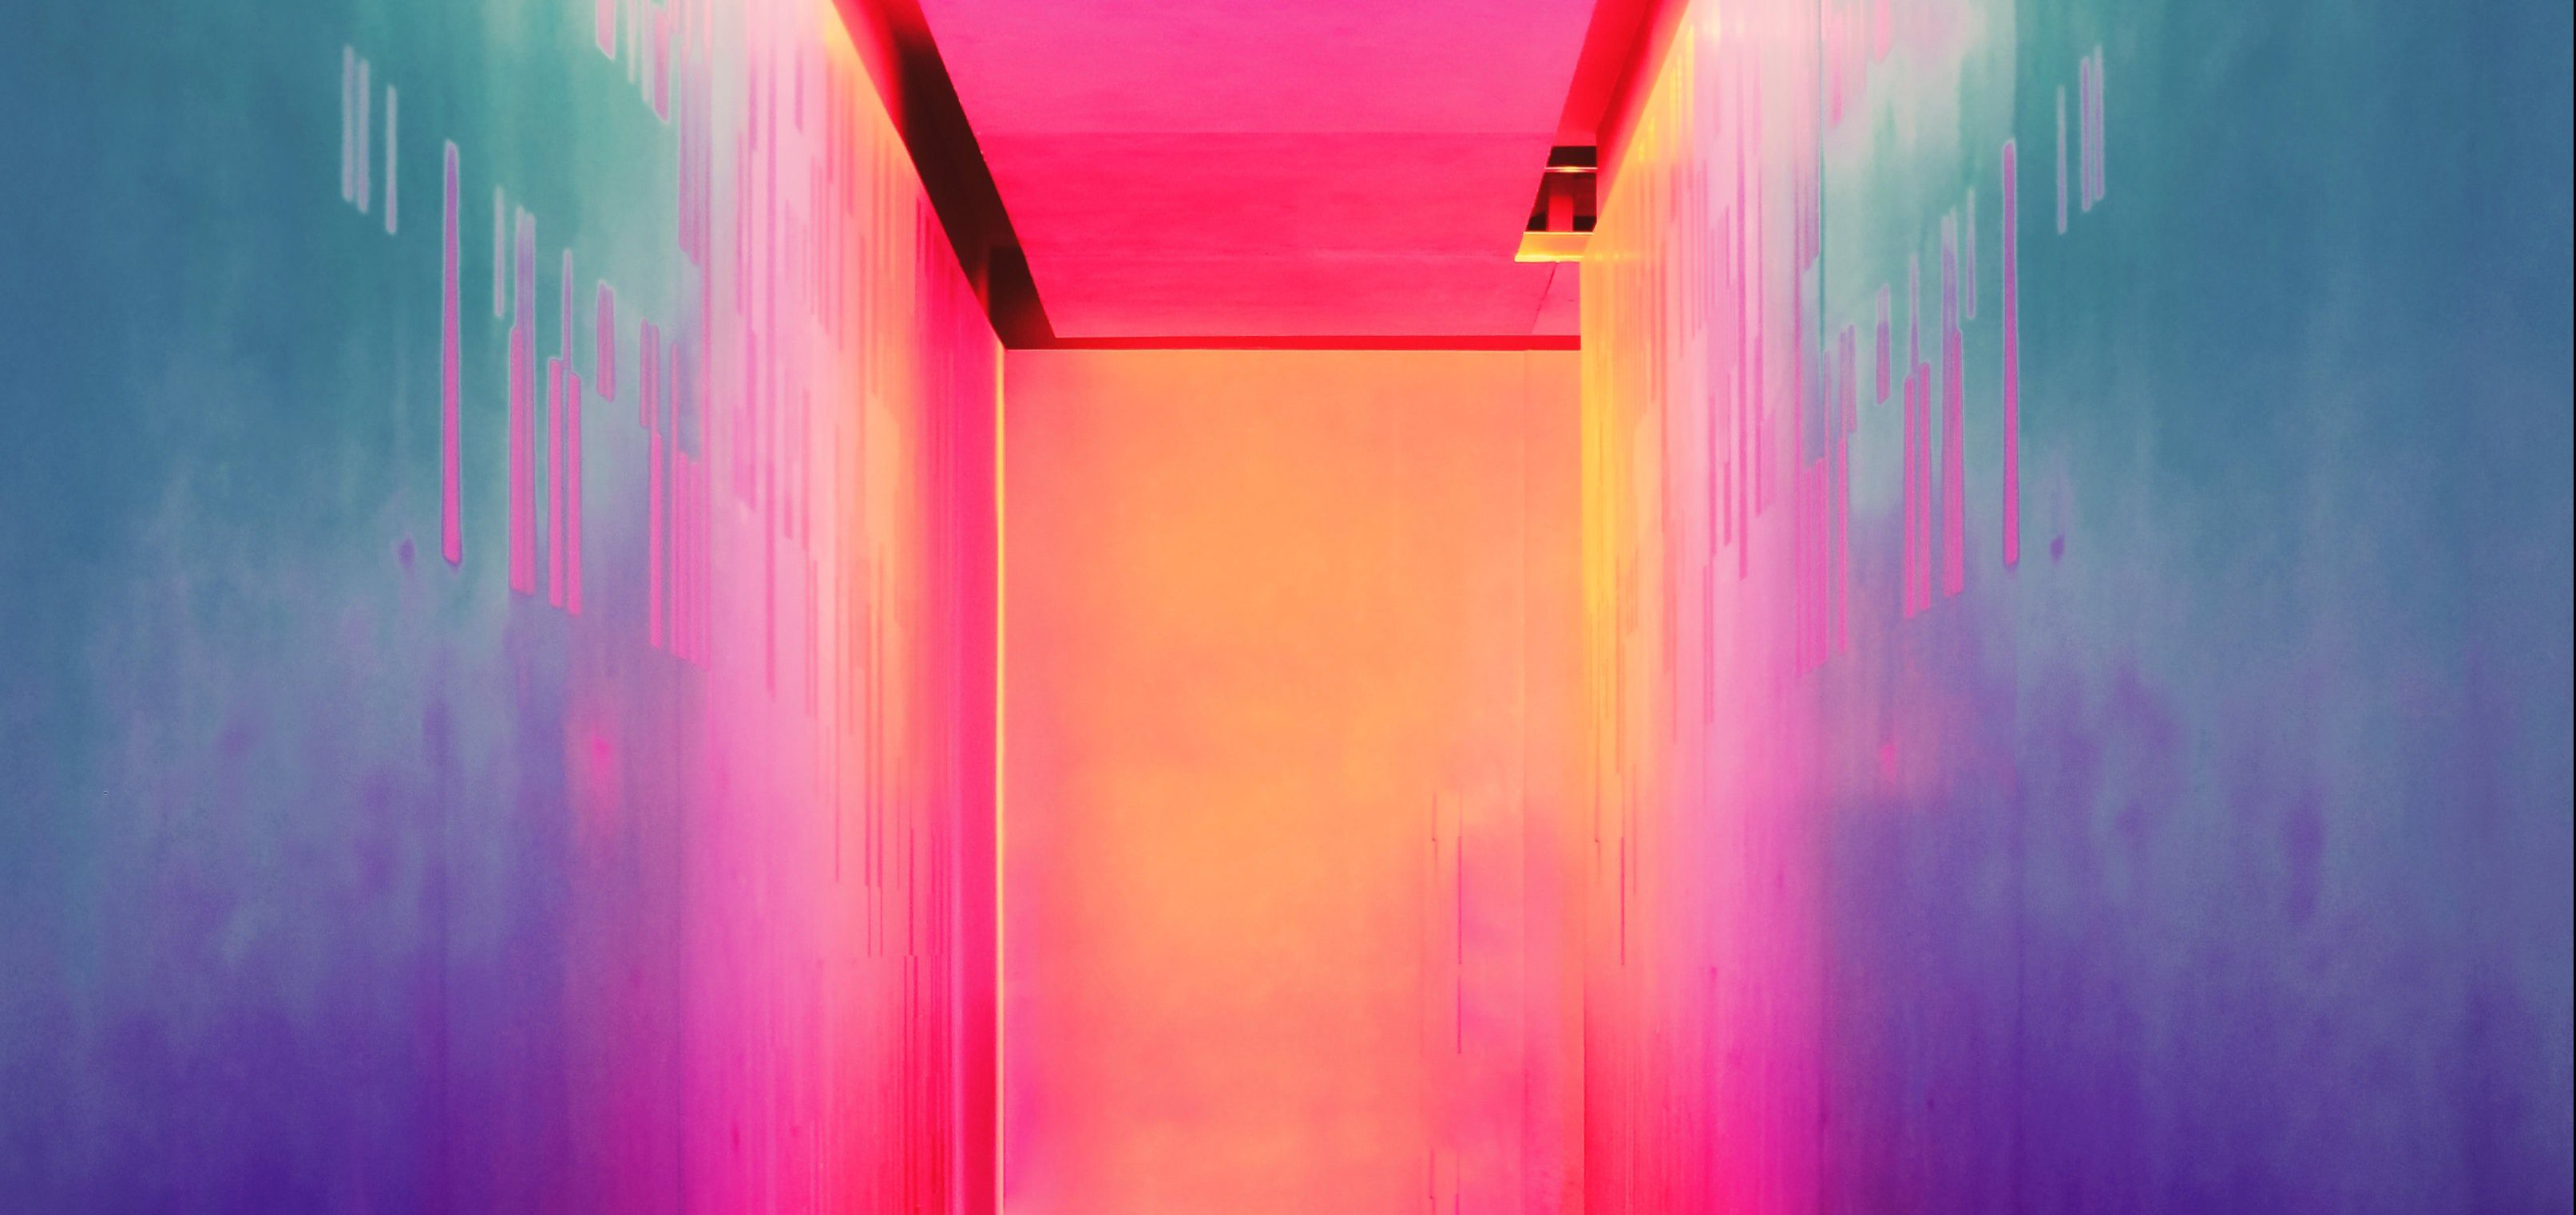 Chromotherapy: colors to balance physical and emotional